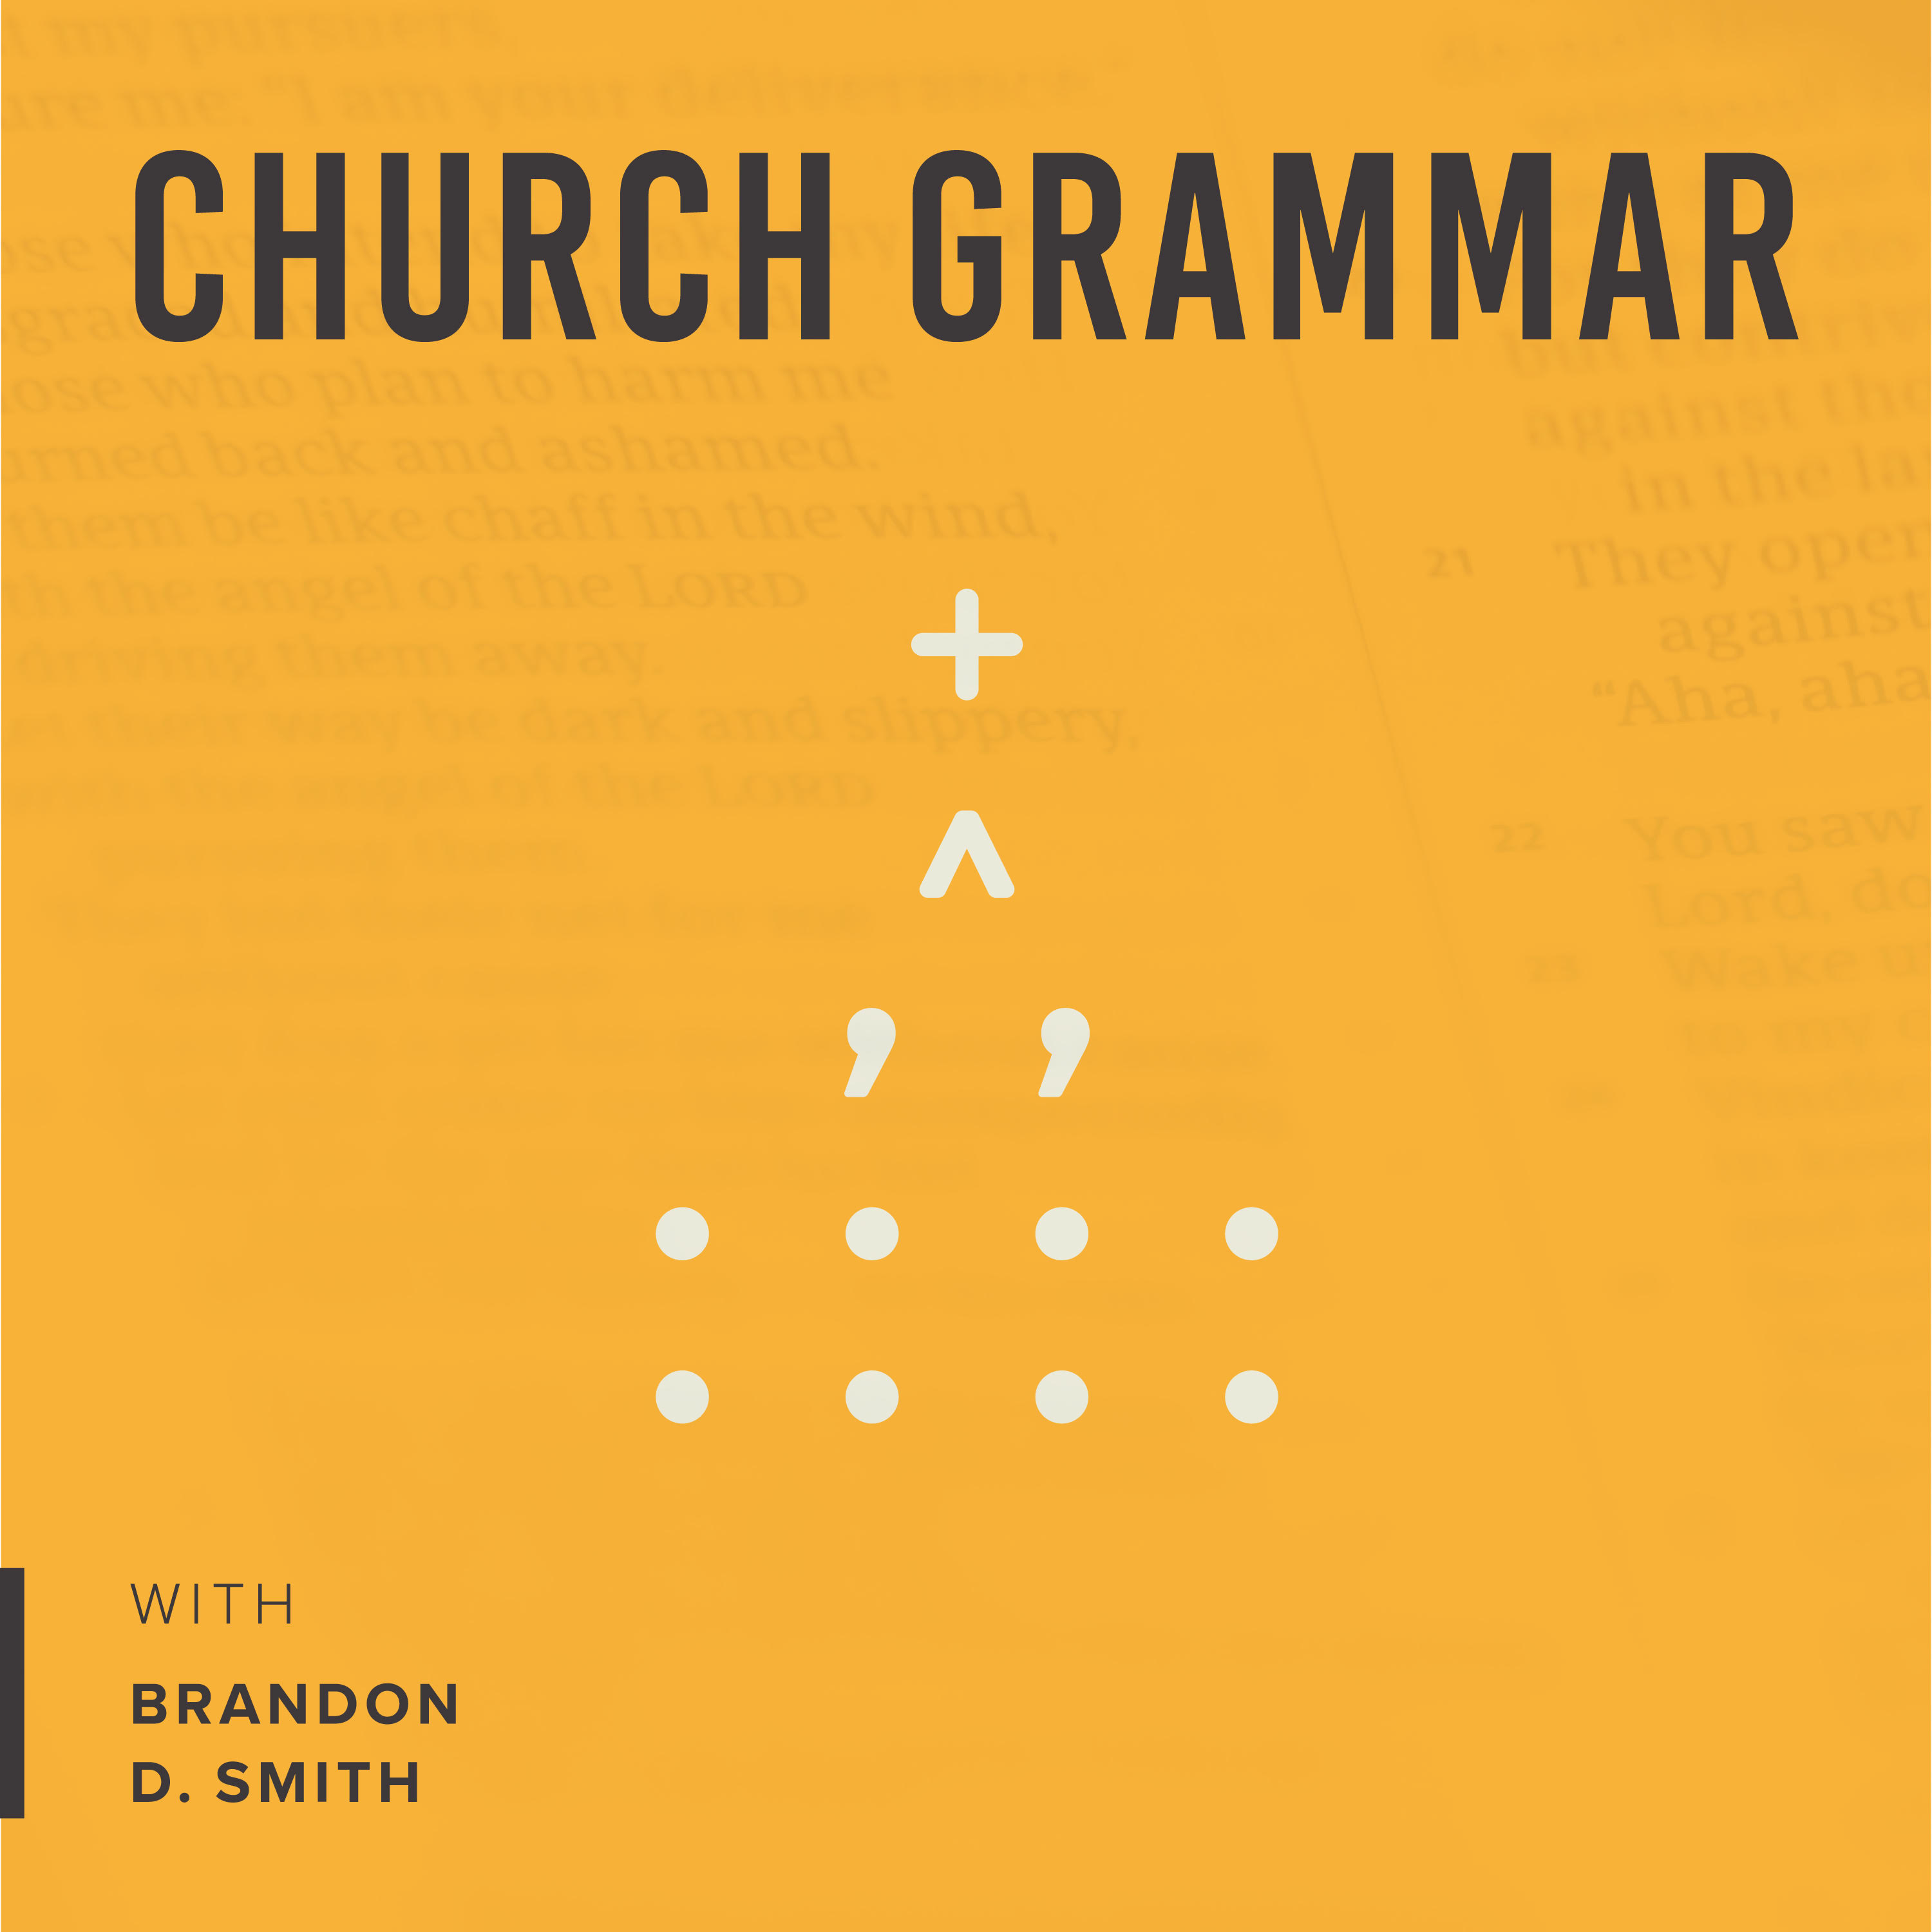 Church Grammar